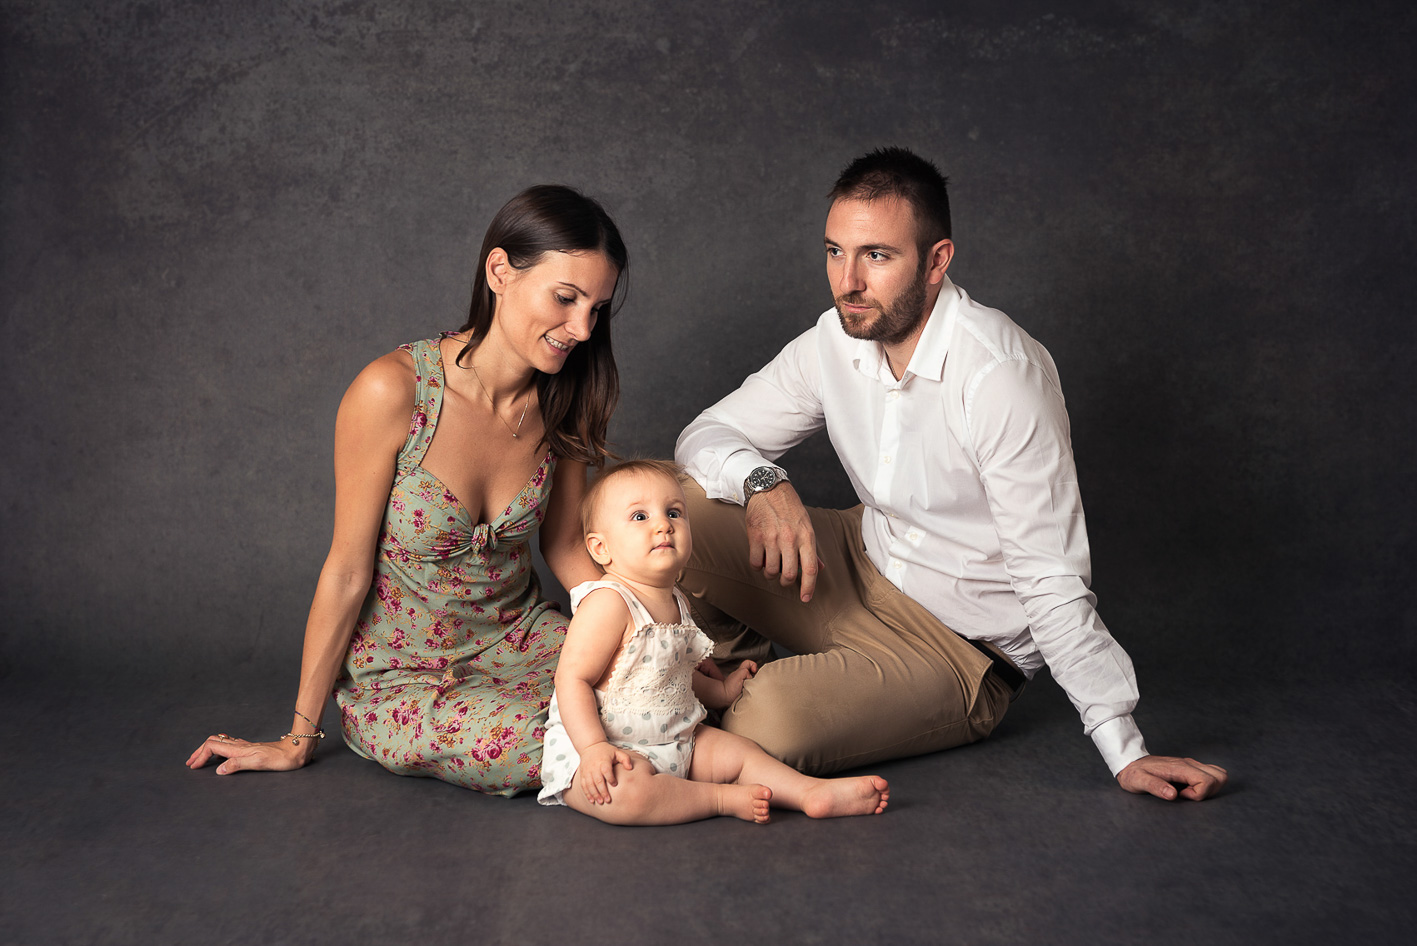 family-photo-tagg-photography-14